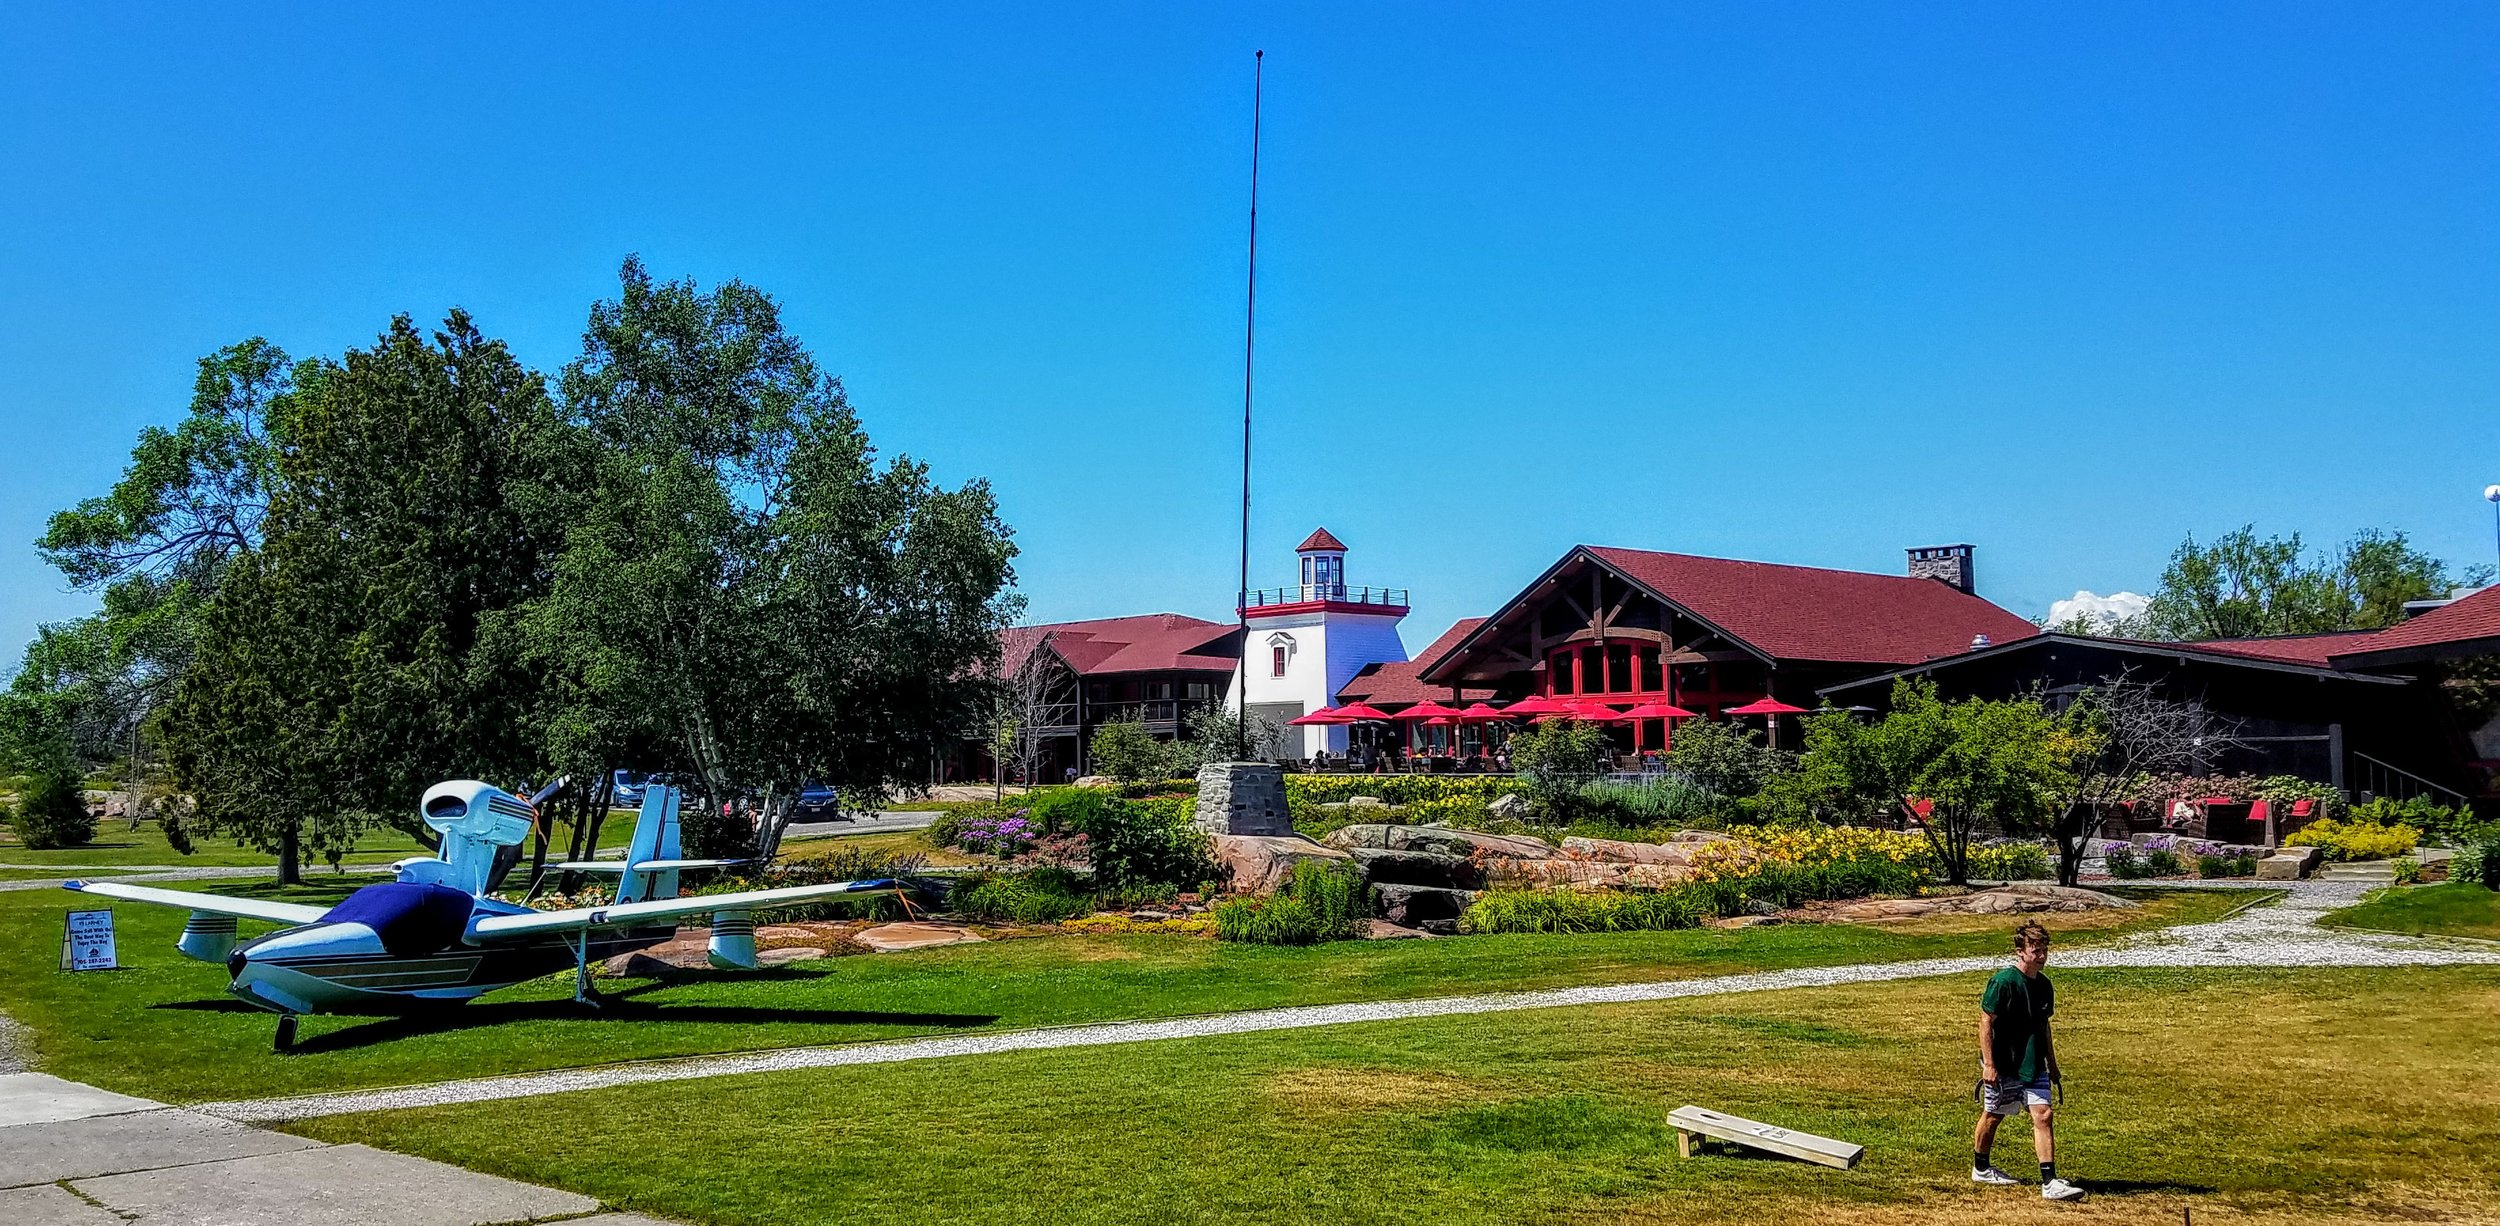 The main Sportsman's Lodge with the seaplane and full resort amenities